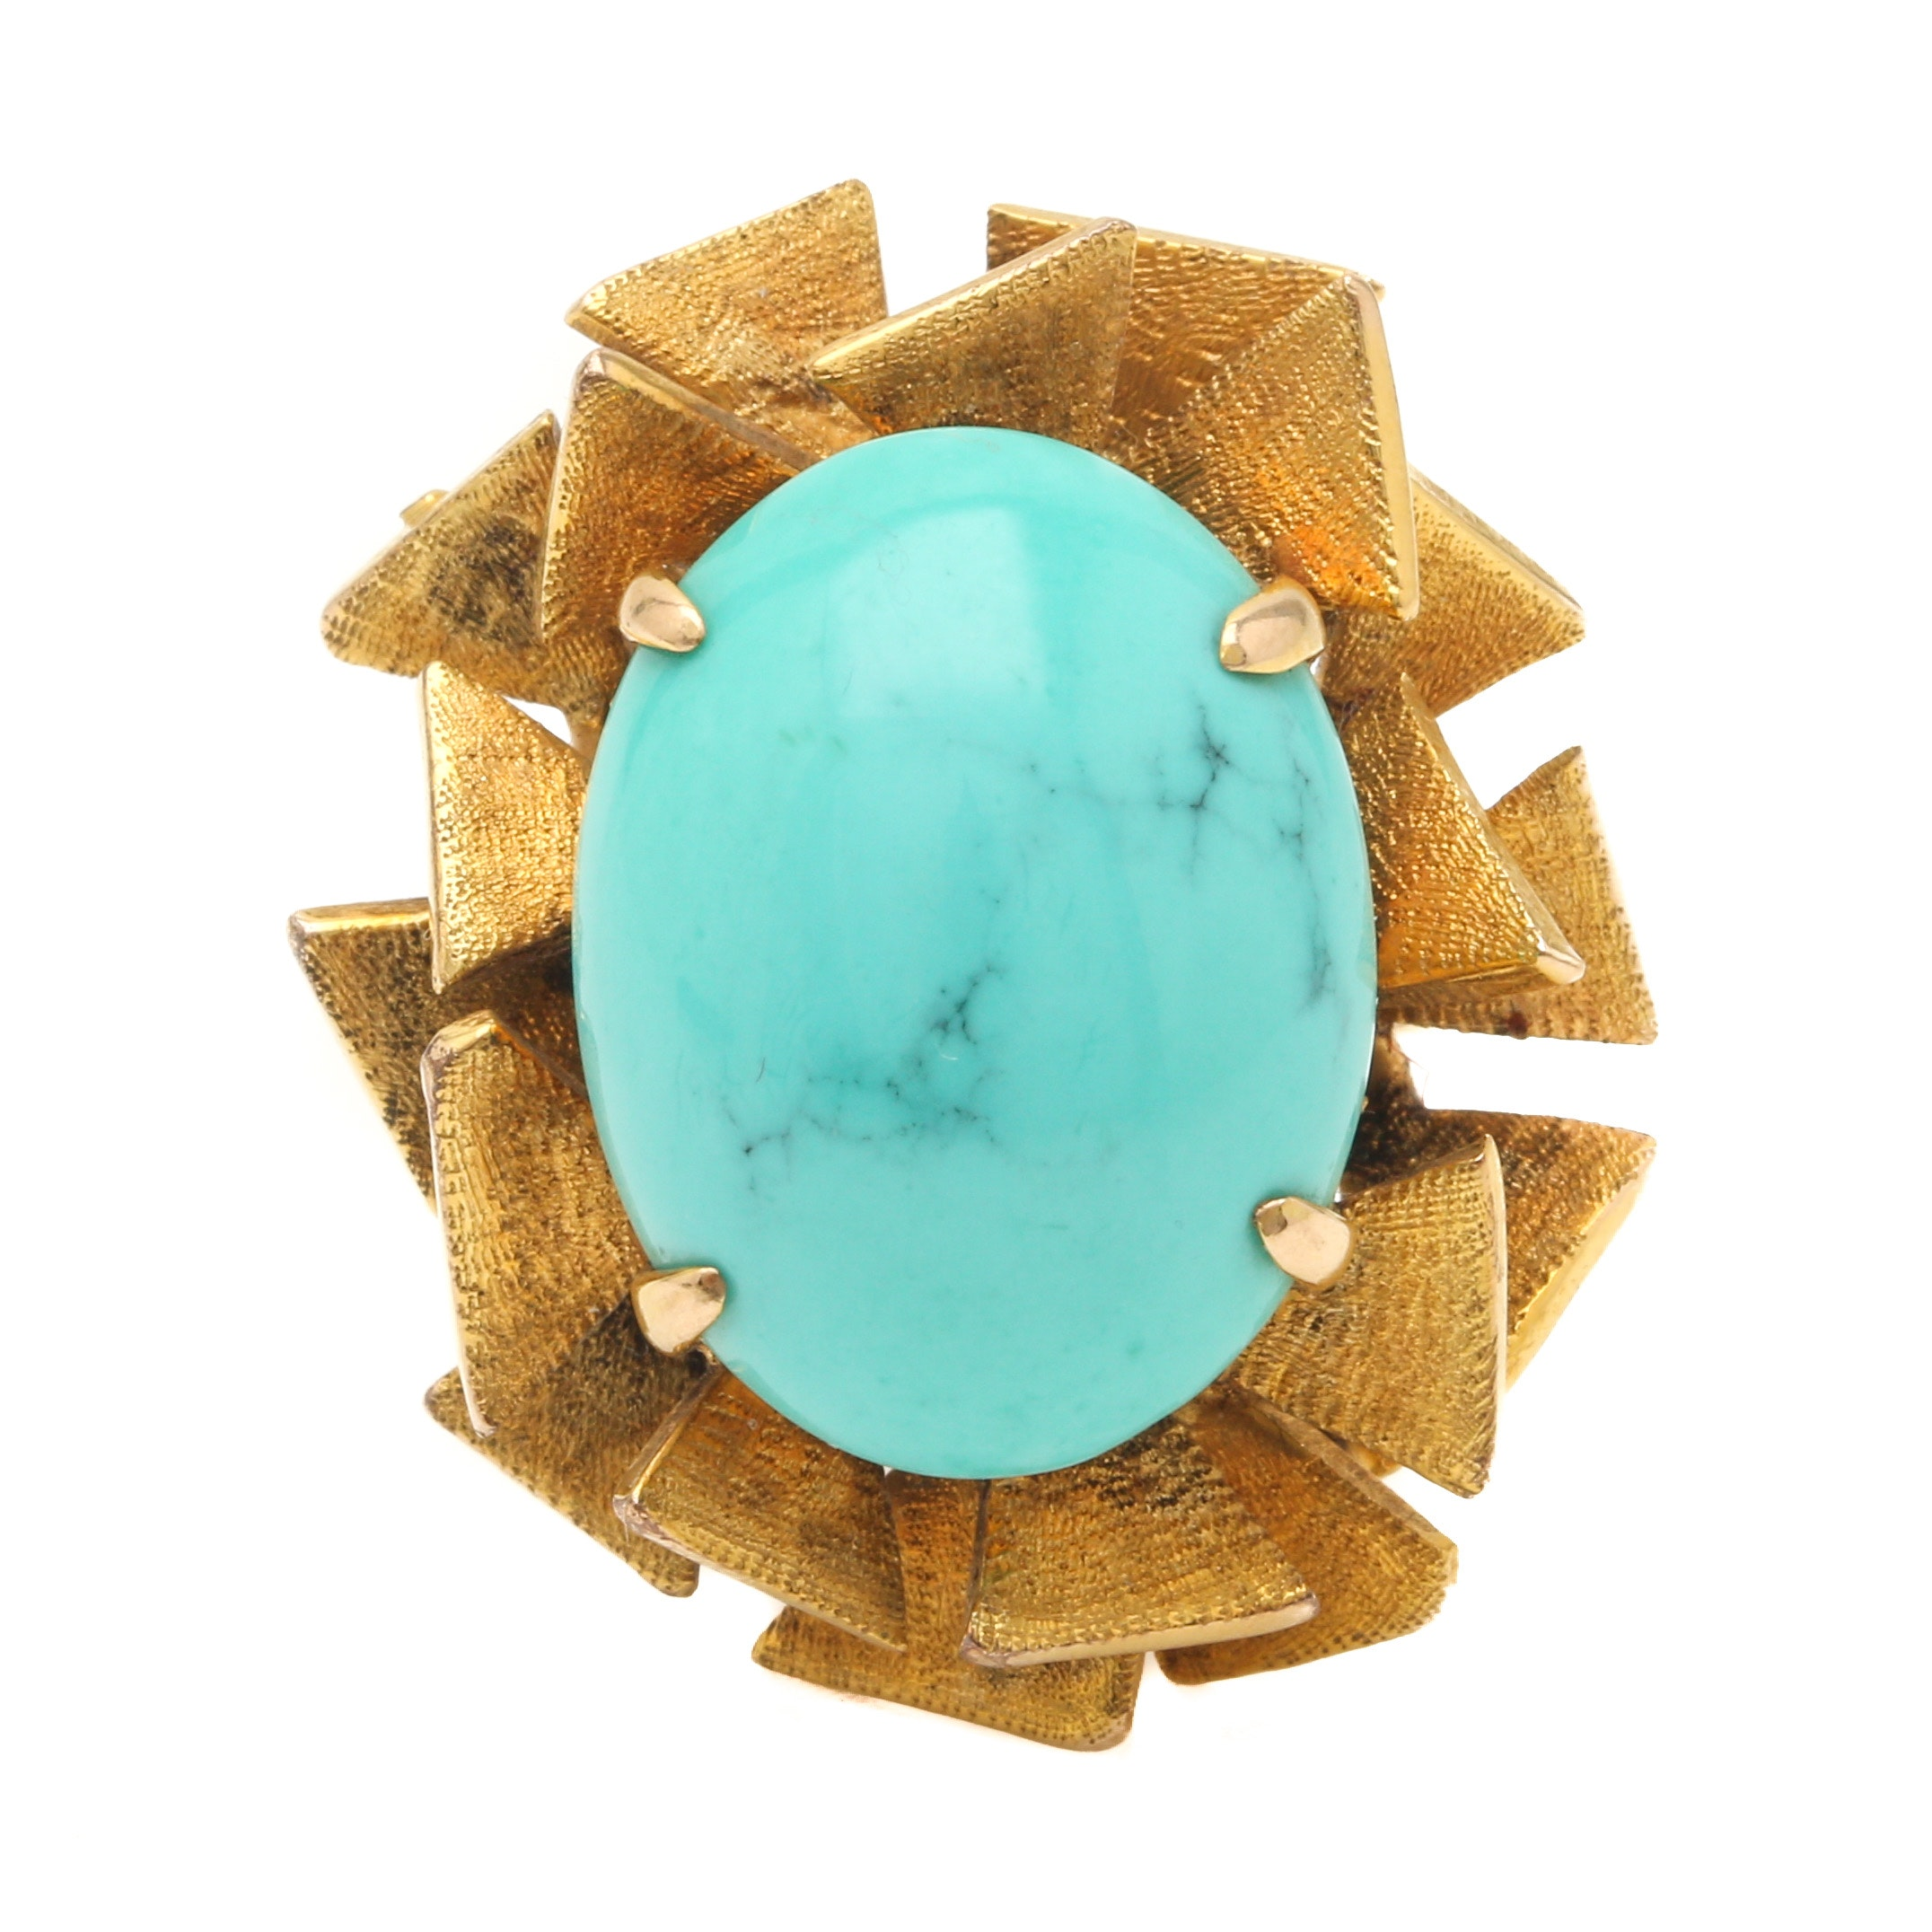 Vintage Brutalist 14K Yellow Gold Stabilized Turquoise Ring